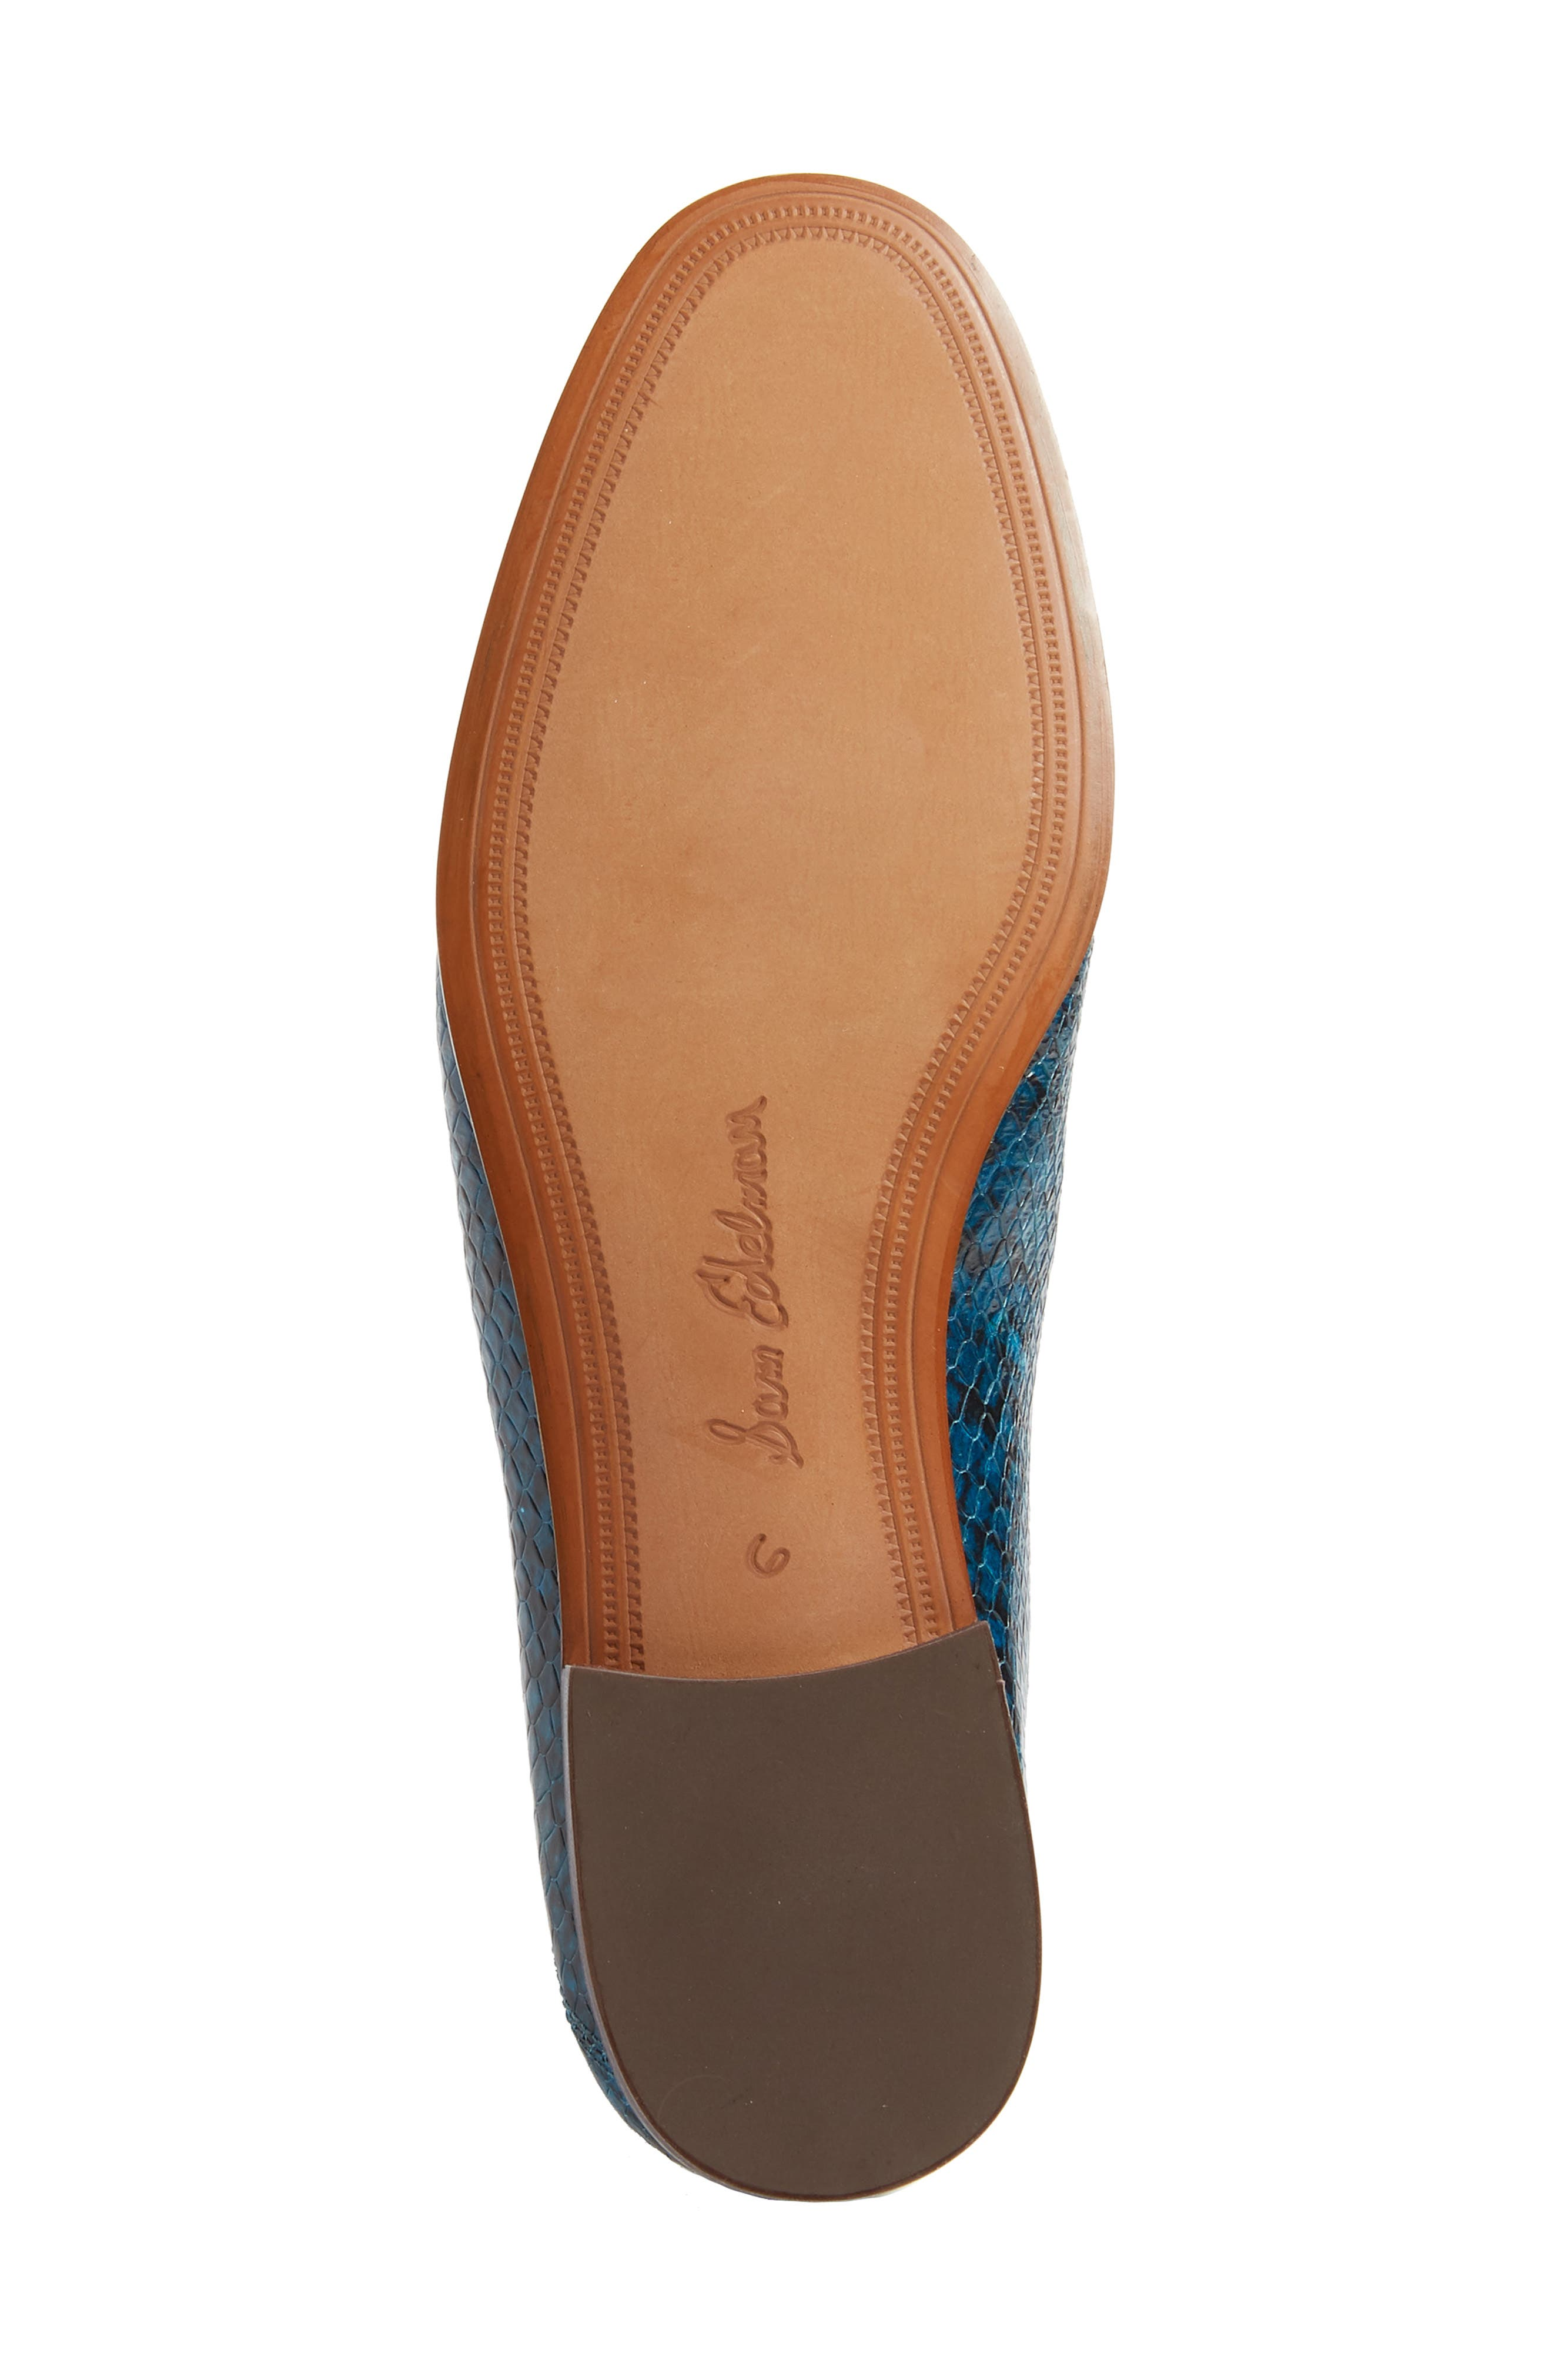 Lior Loafer,                             Alternate thumbnail 3, color,                             Peacock Blue Snake Print